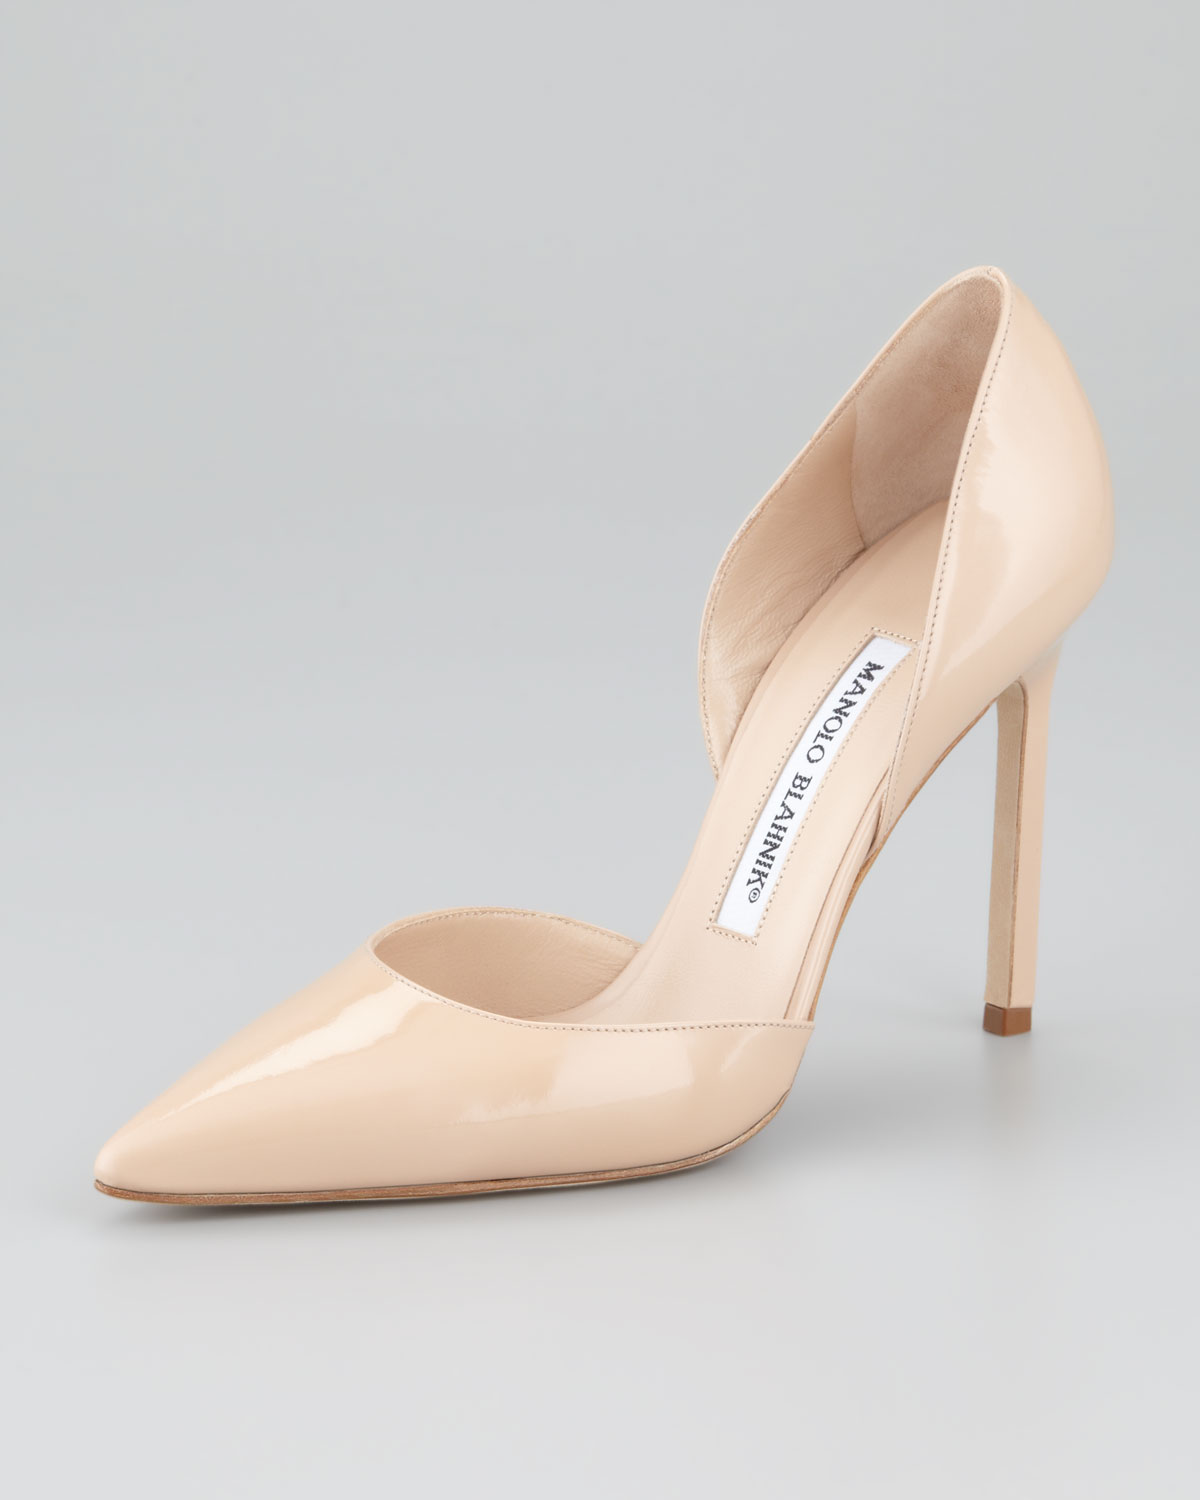 cheap websites Manolo Blahnik Brocade d'Orsay Pumps for cheap price really online omg9o